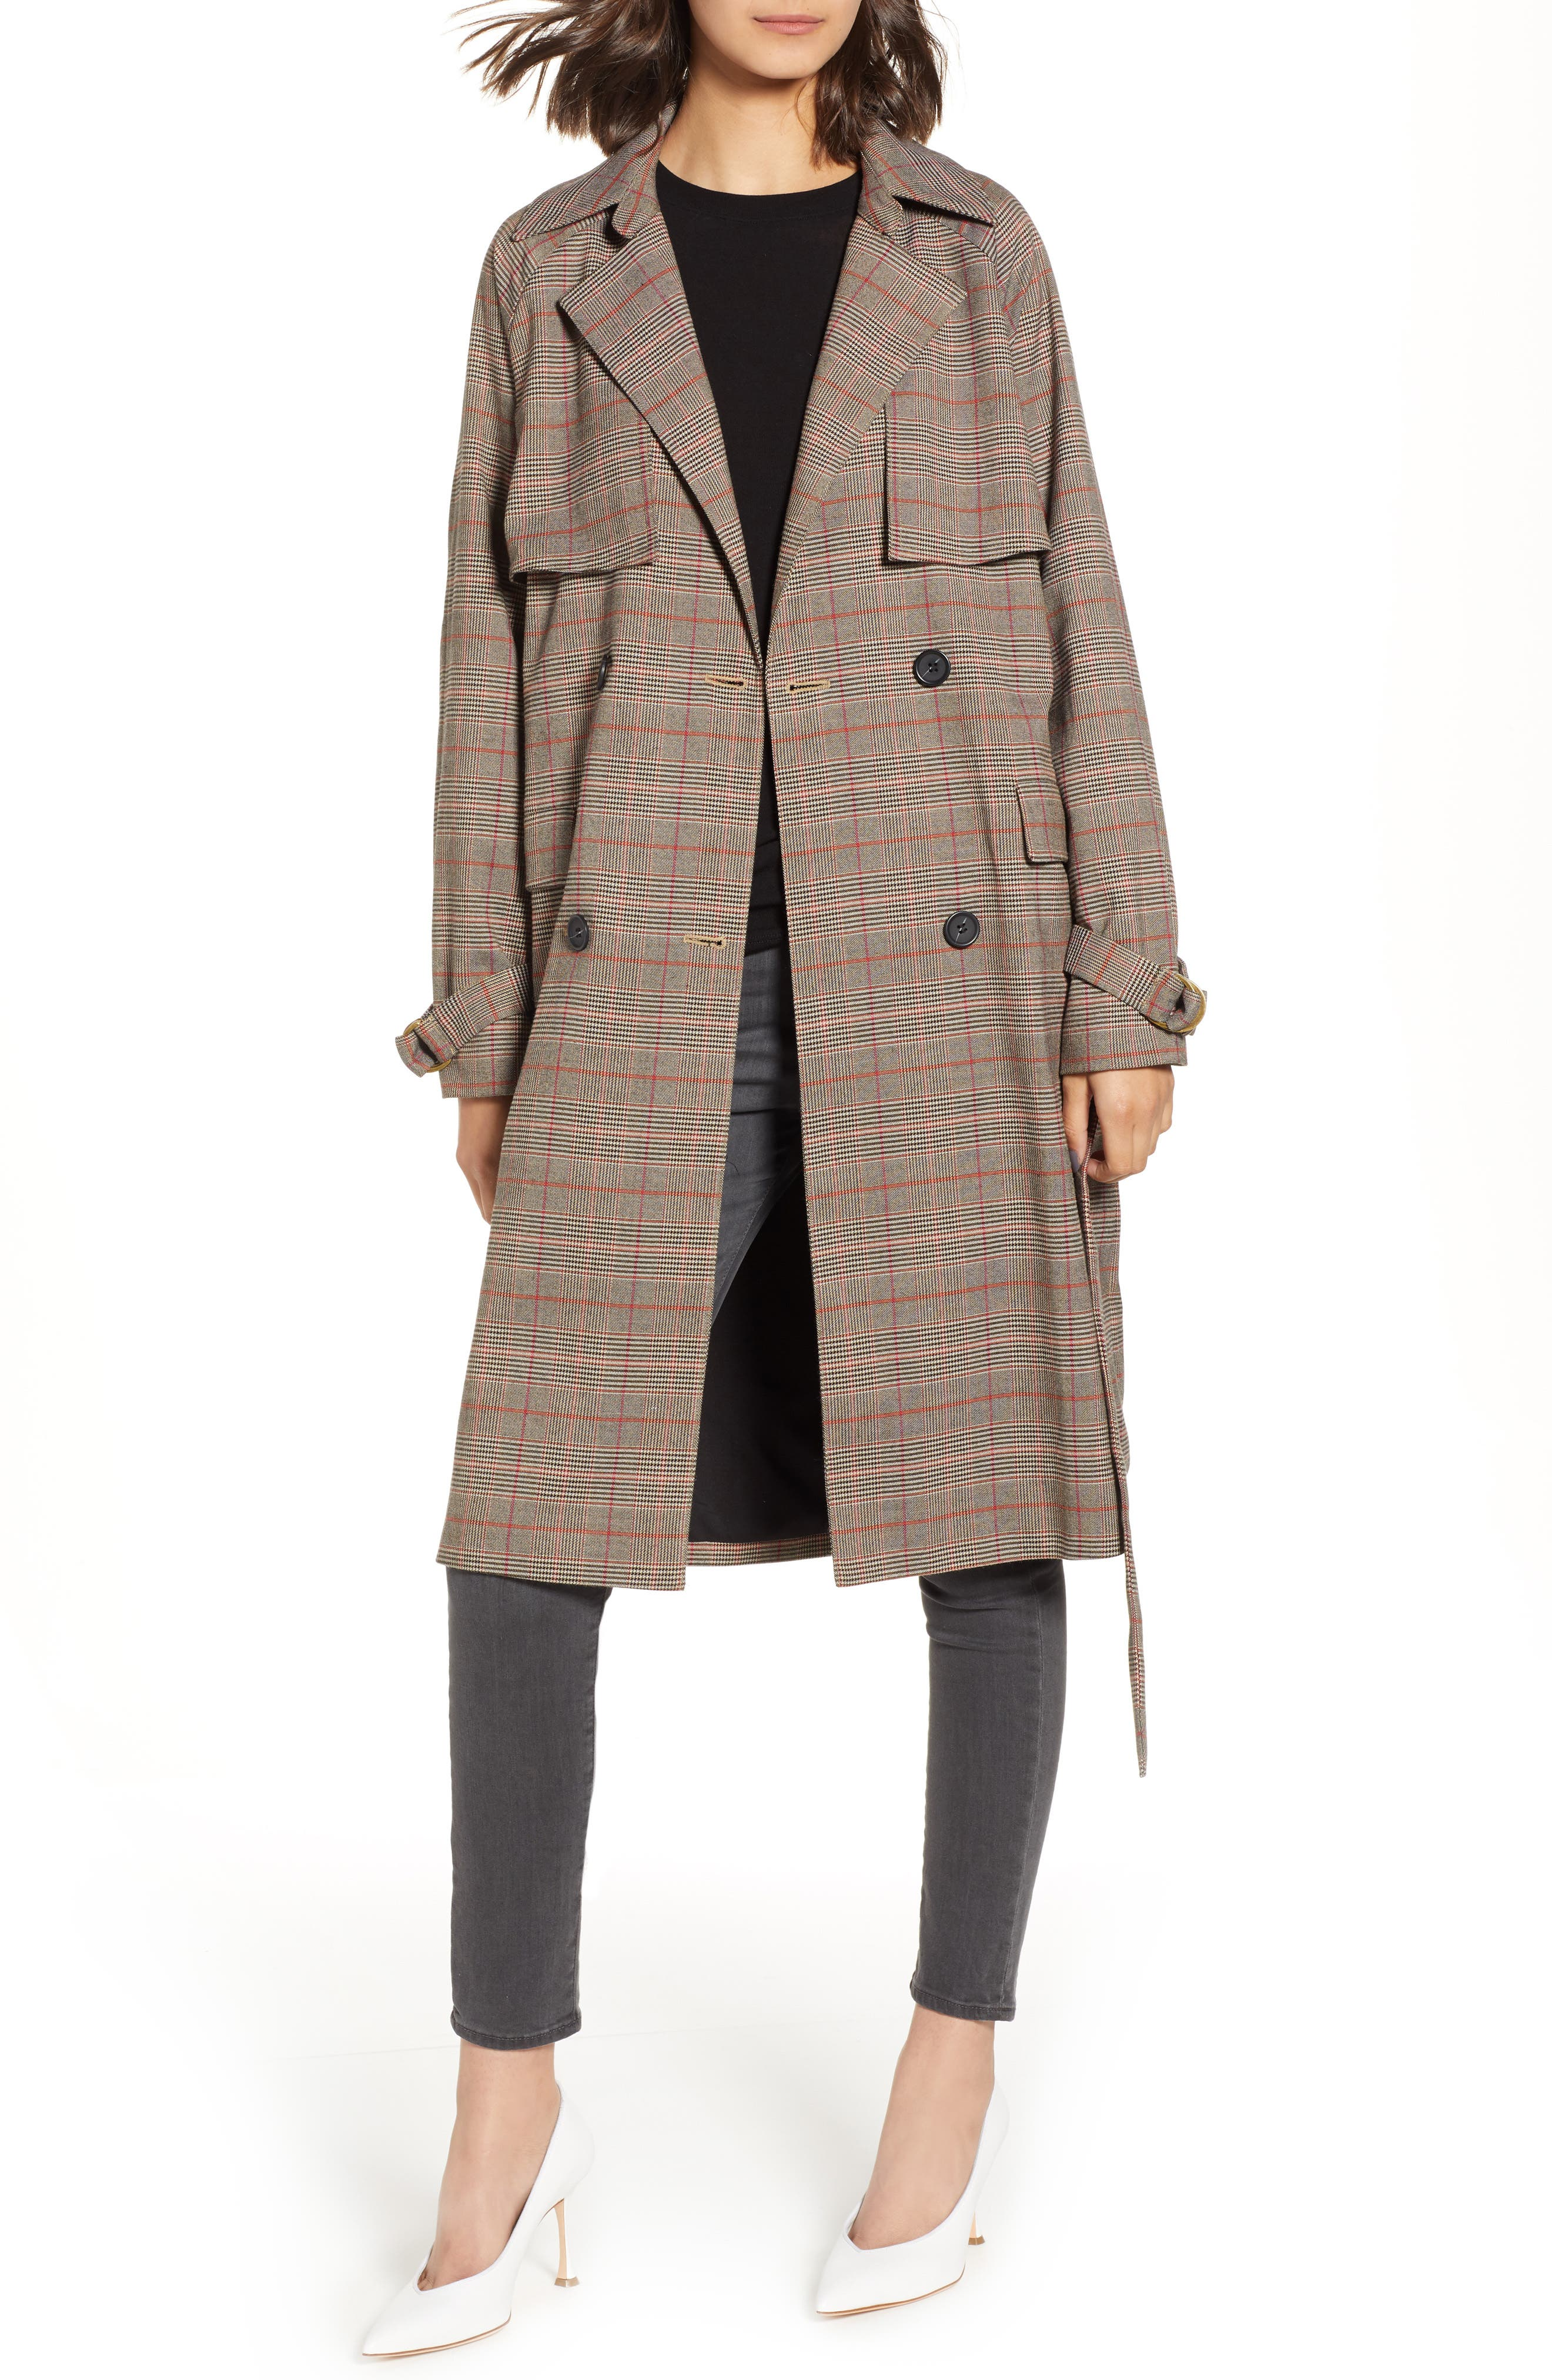 CHELSEA28 Plaid Trench Coat, Main, color, 235